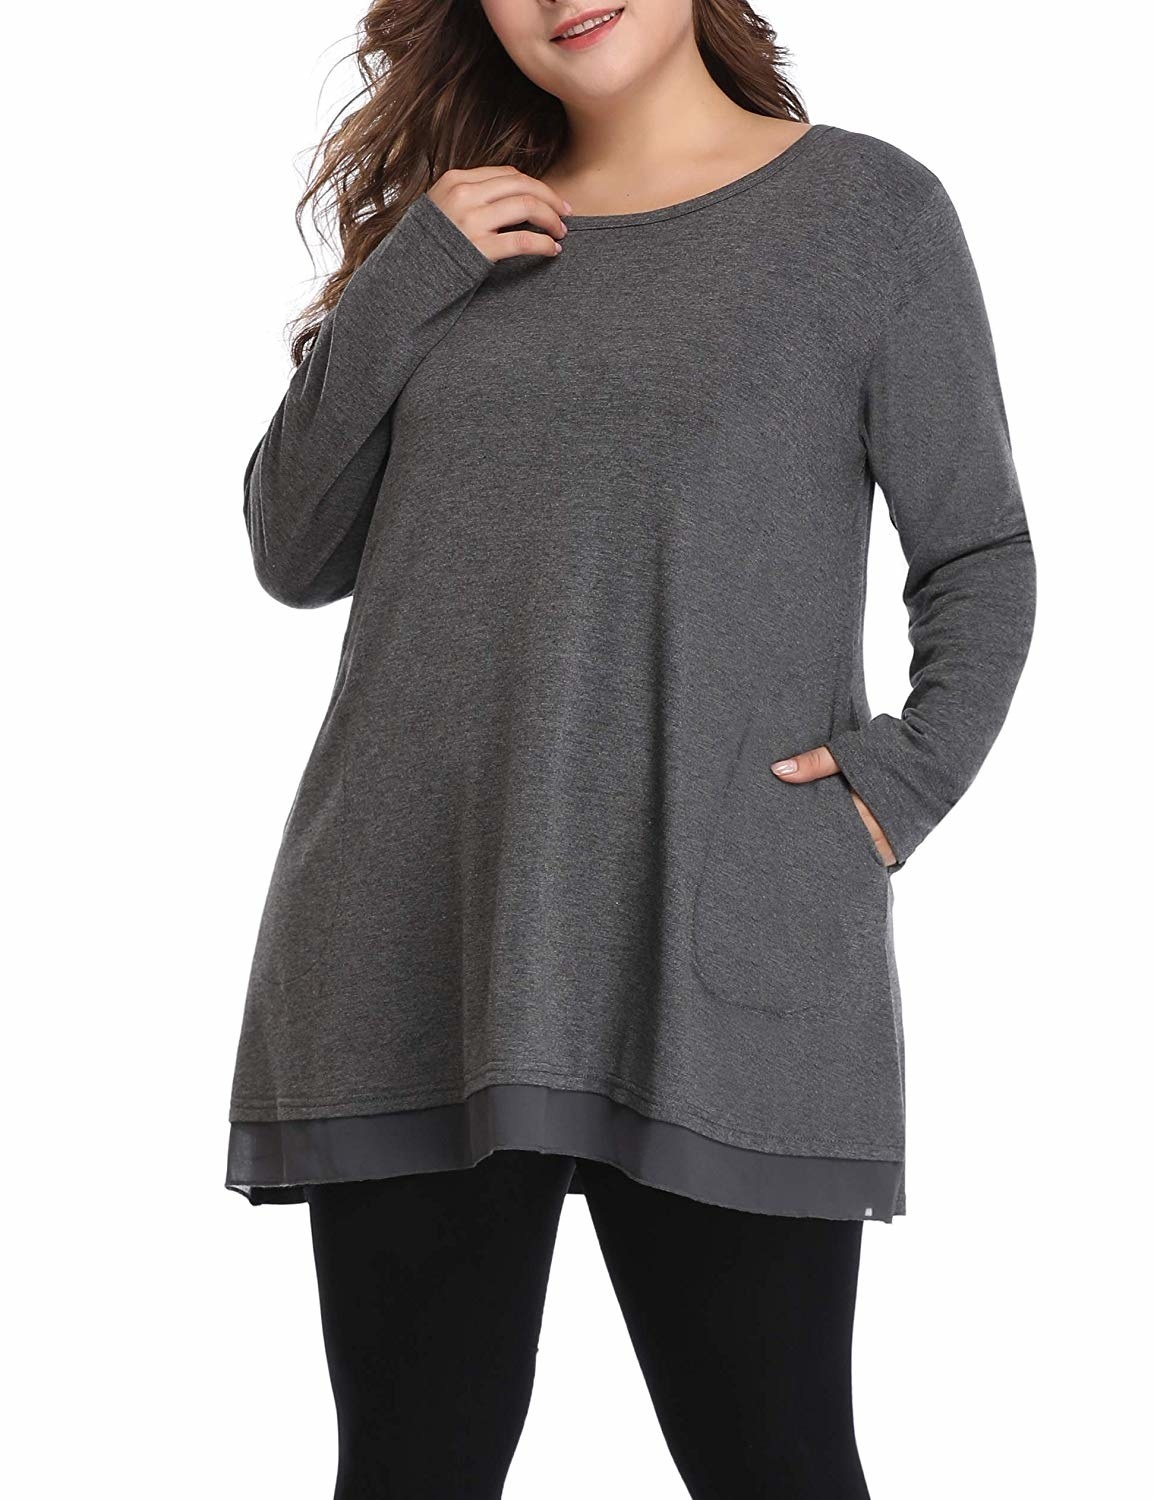 long sleeve shirt with front pockets